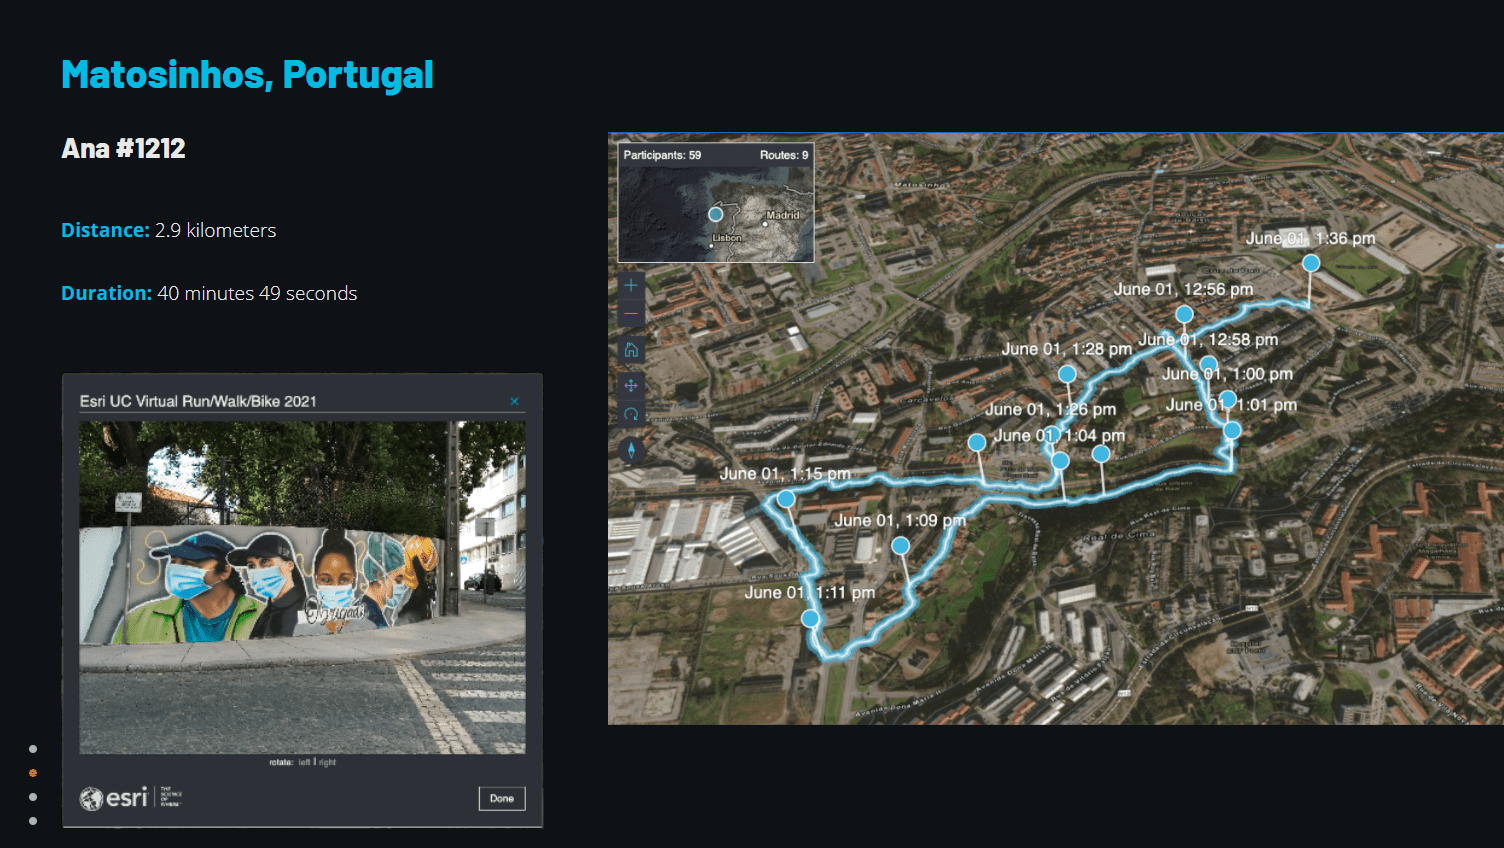 Photo and map showing distance, duration, and route of Ana's run